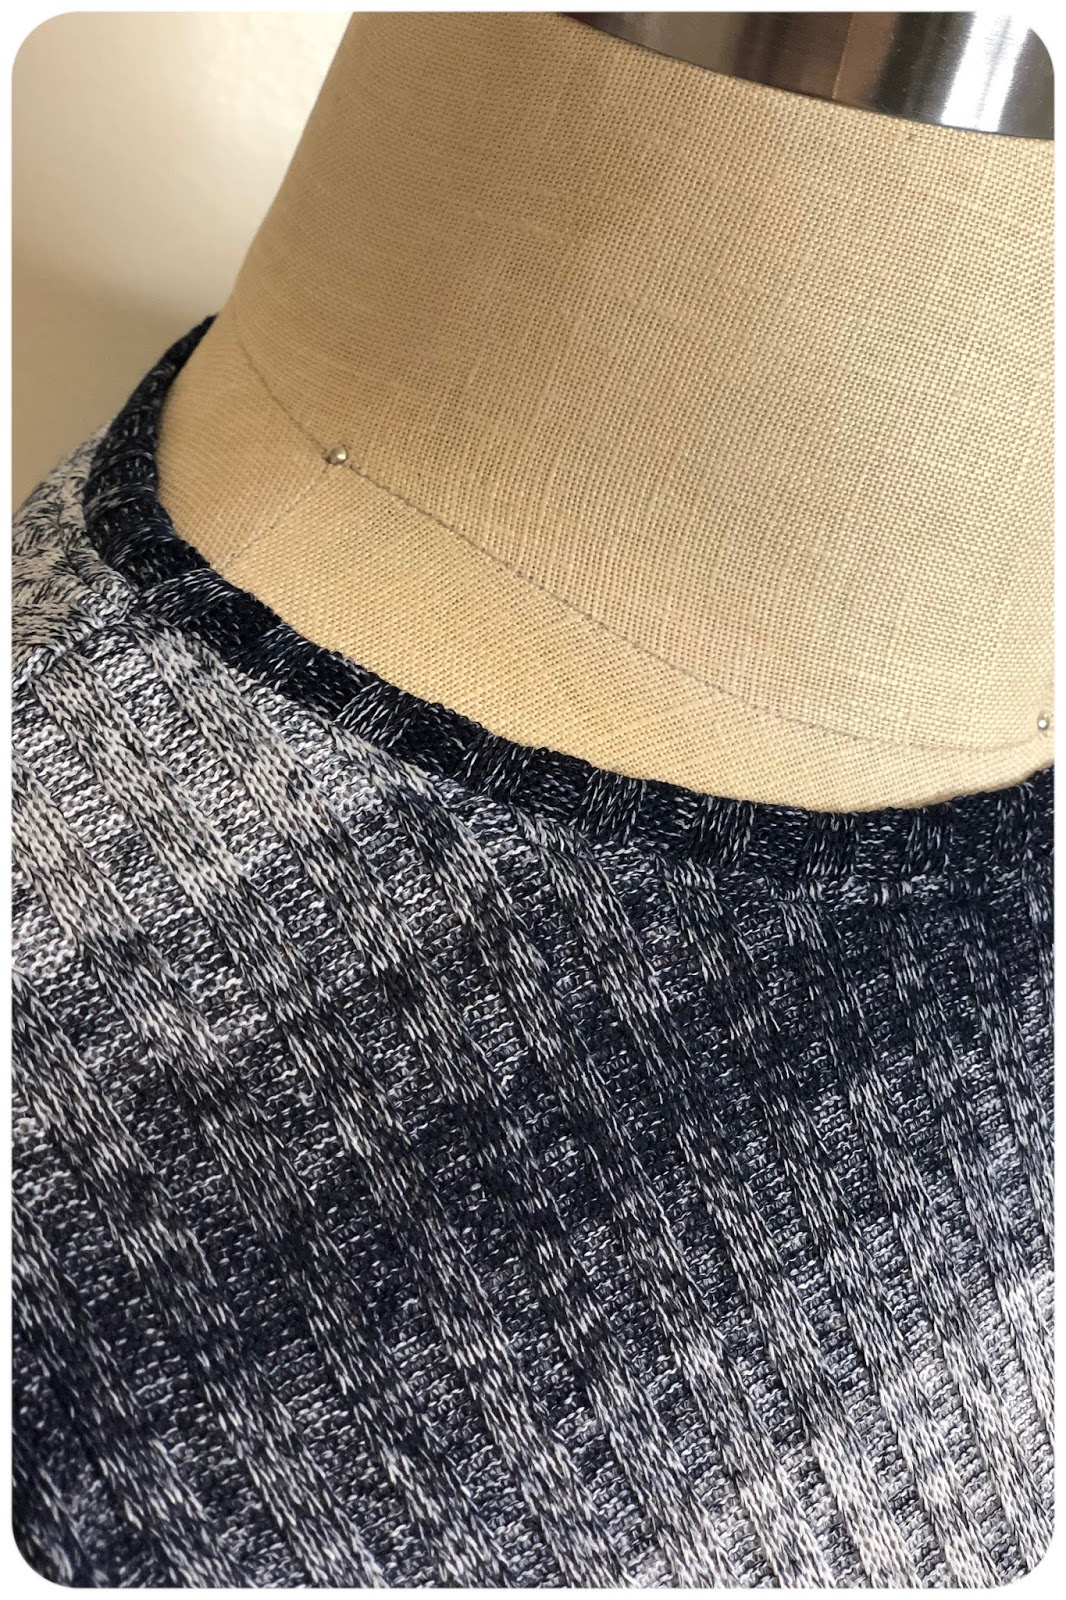 bc19a9b85 And here is a close up my neck line finish. For this project, I used my  walking foot. I find that's the easiest way to keep sweater knits from  stretching.